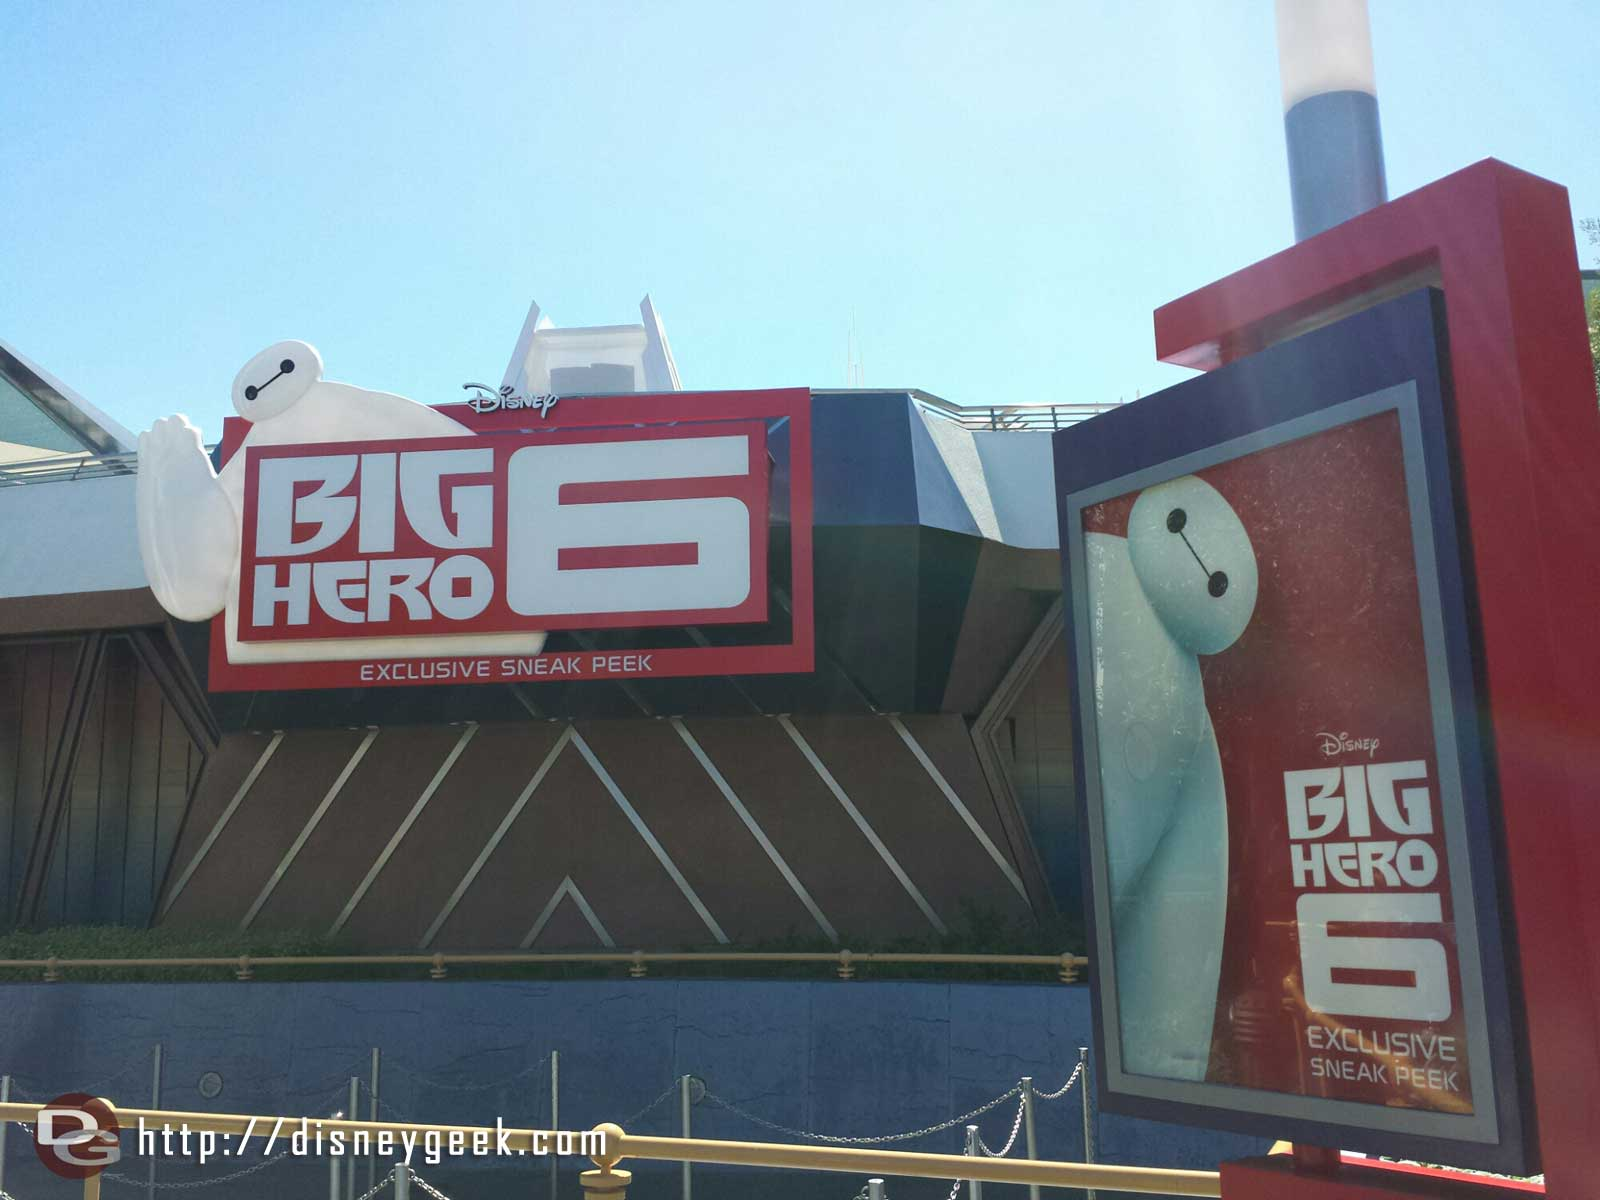 A #BigHero6 preview has moved into the Magic Eye Theatre for the next couple of months